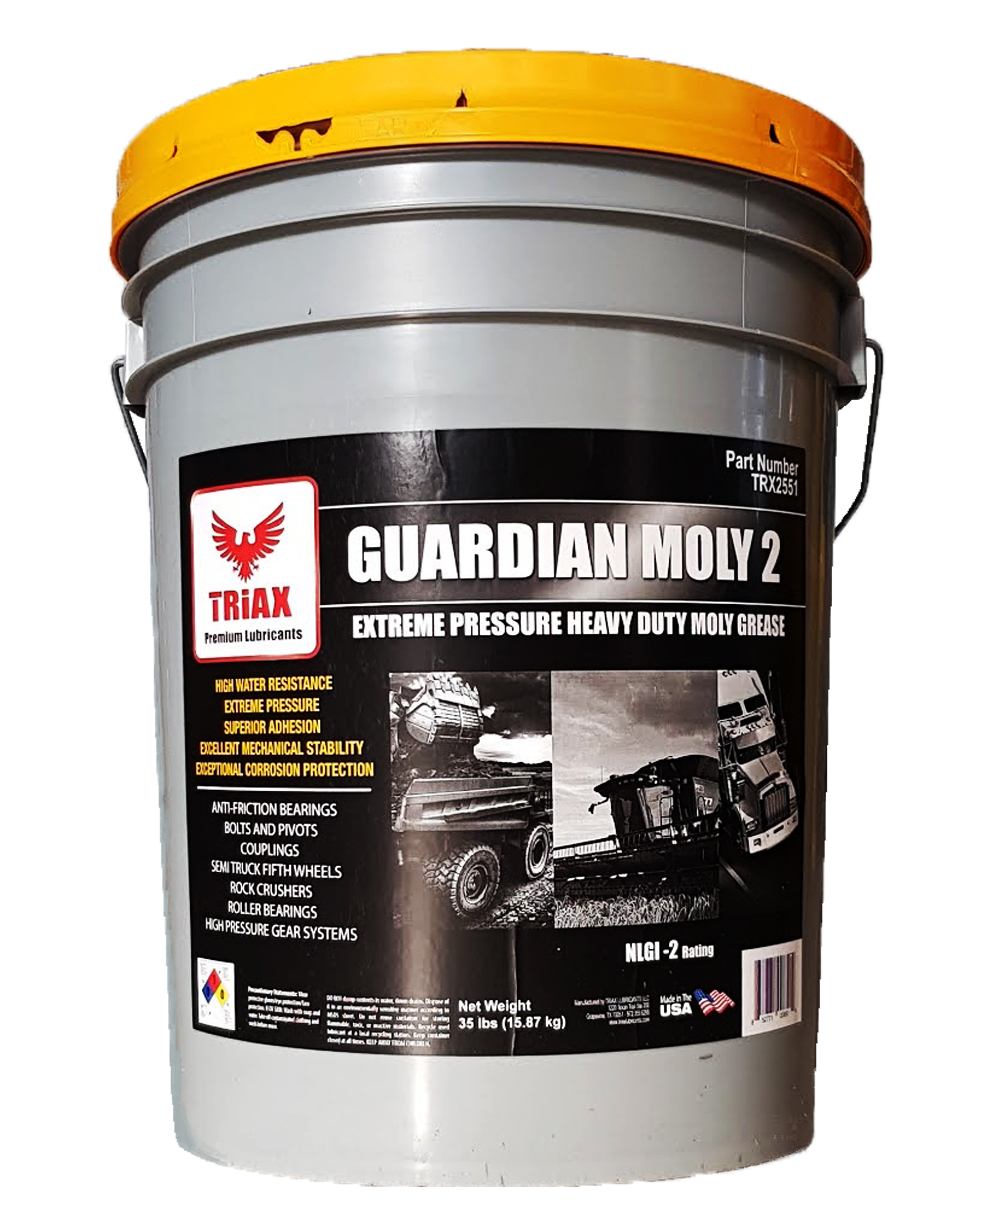 TRIAX Guardian GM 2 - Vaselina Heavy Duty Grafitata Moly